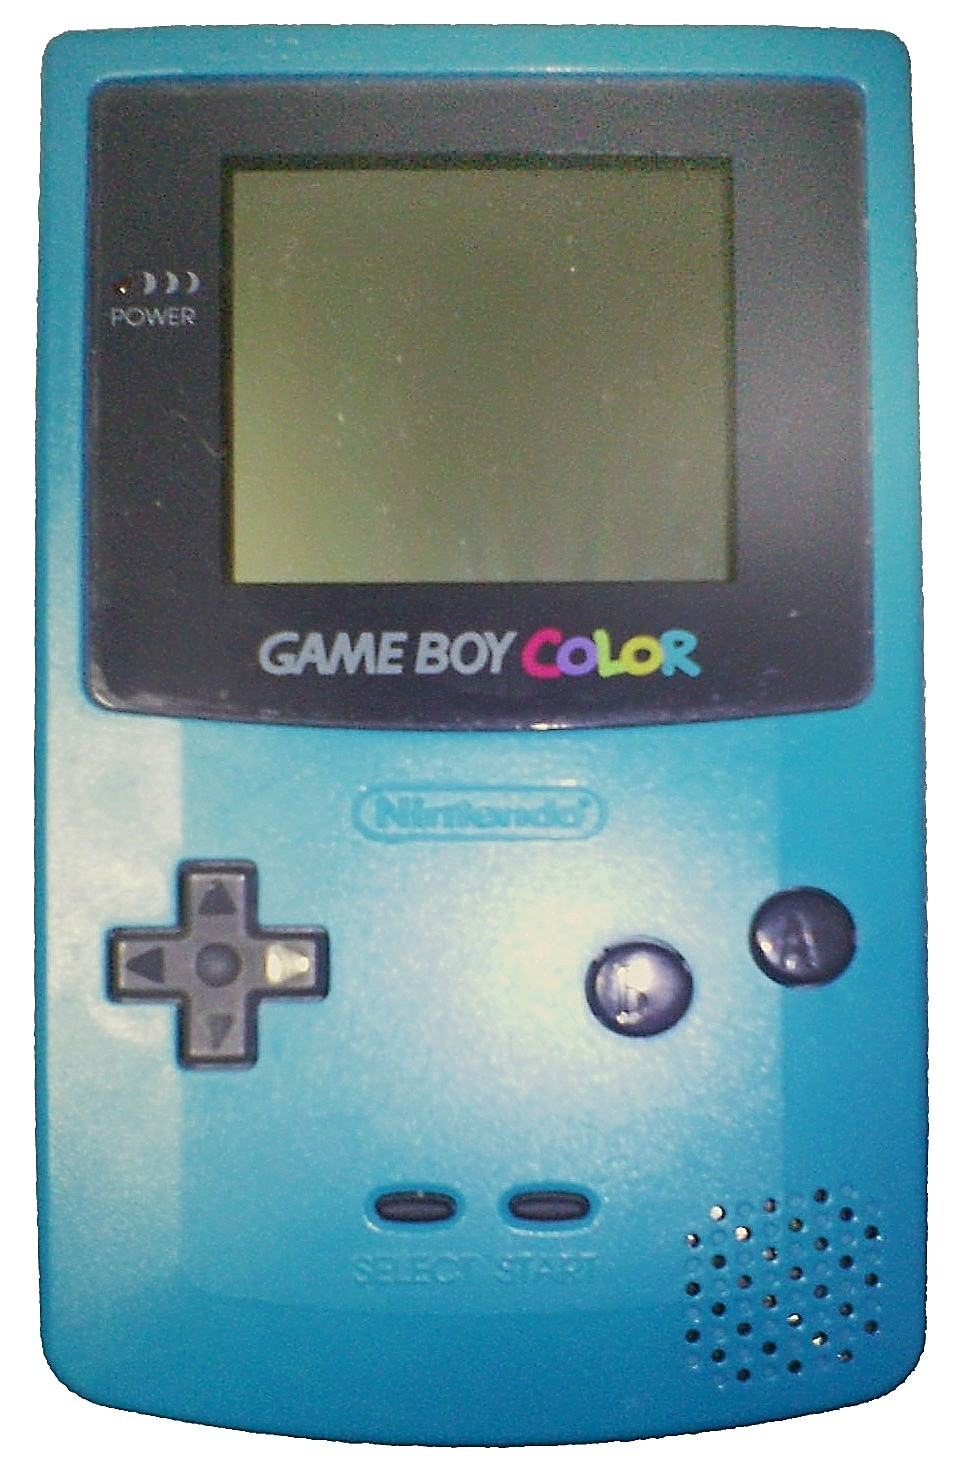 https://upload.wikimedia.org/wikipedia/commons/f/fe/Game_Boy_Color.jpg